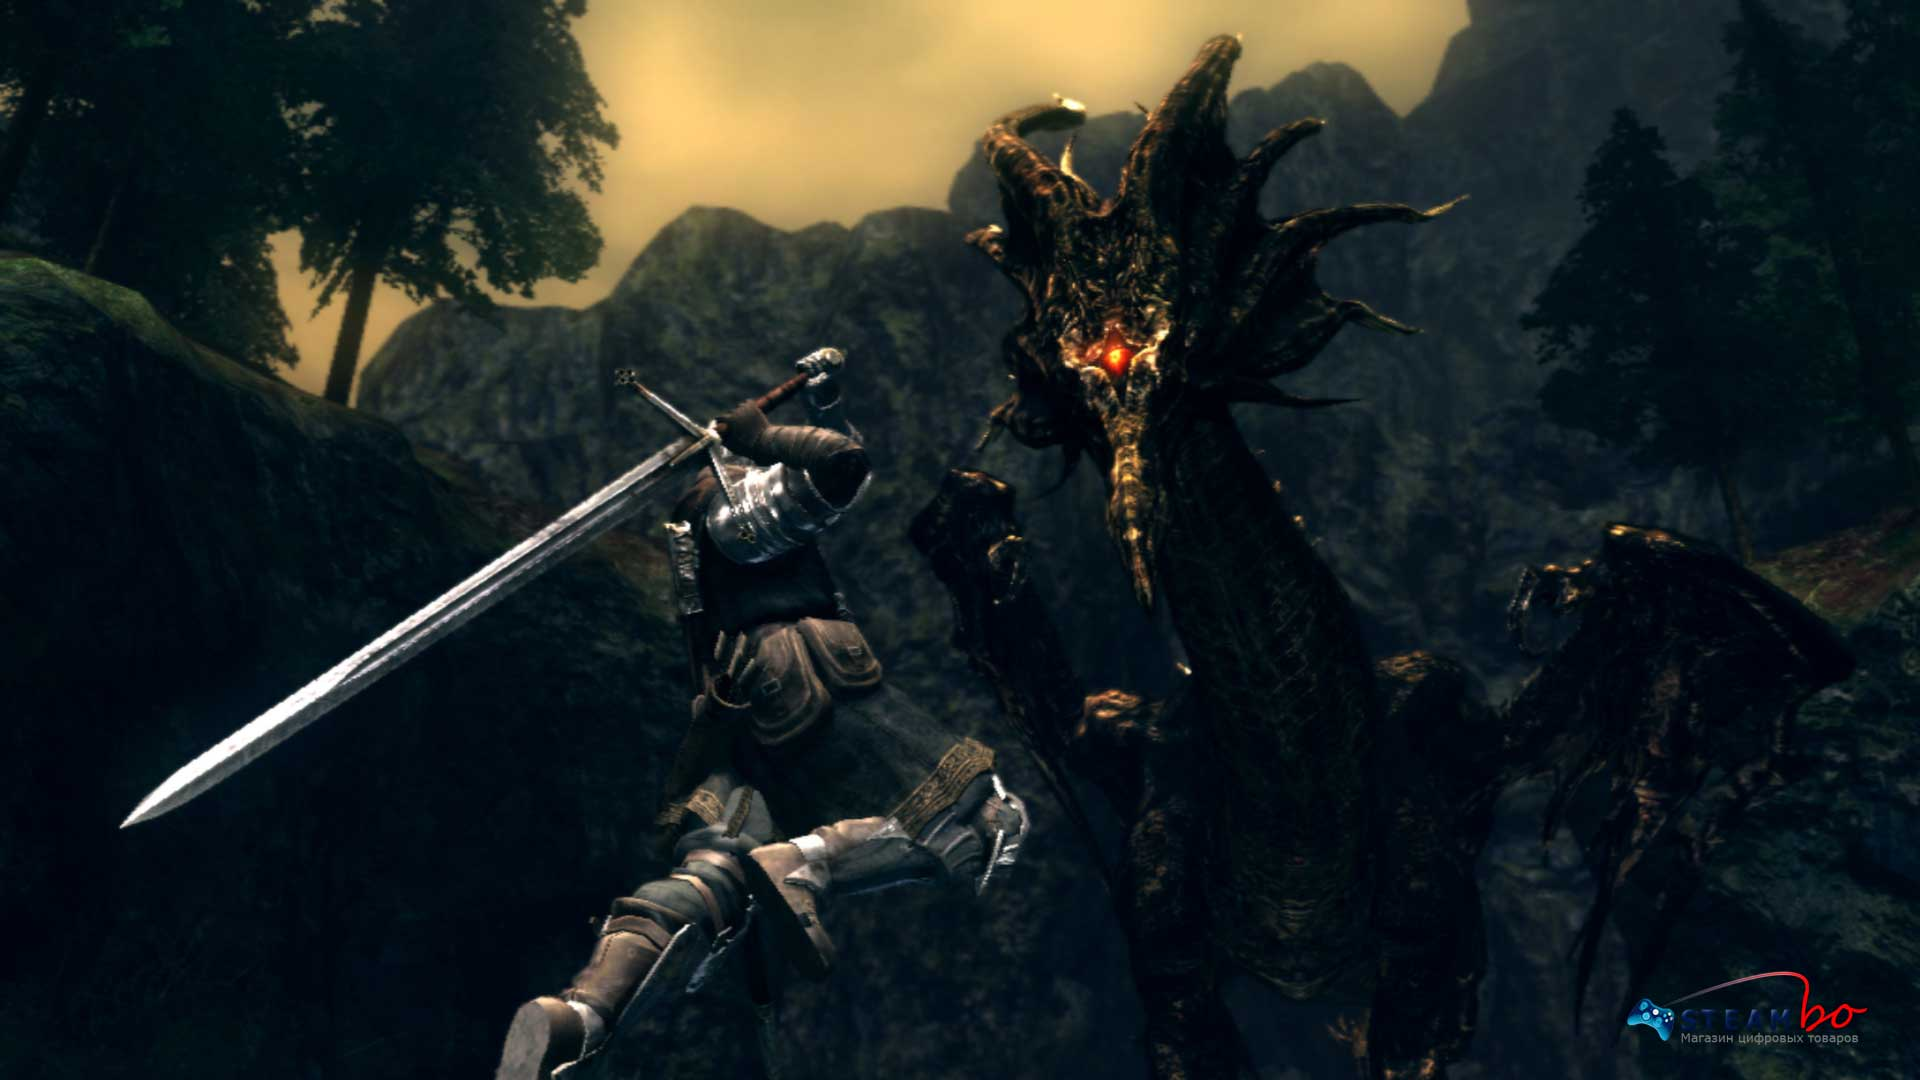 Dark Souls: Prepare To Die Edition (Steam Gift / Key)